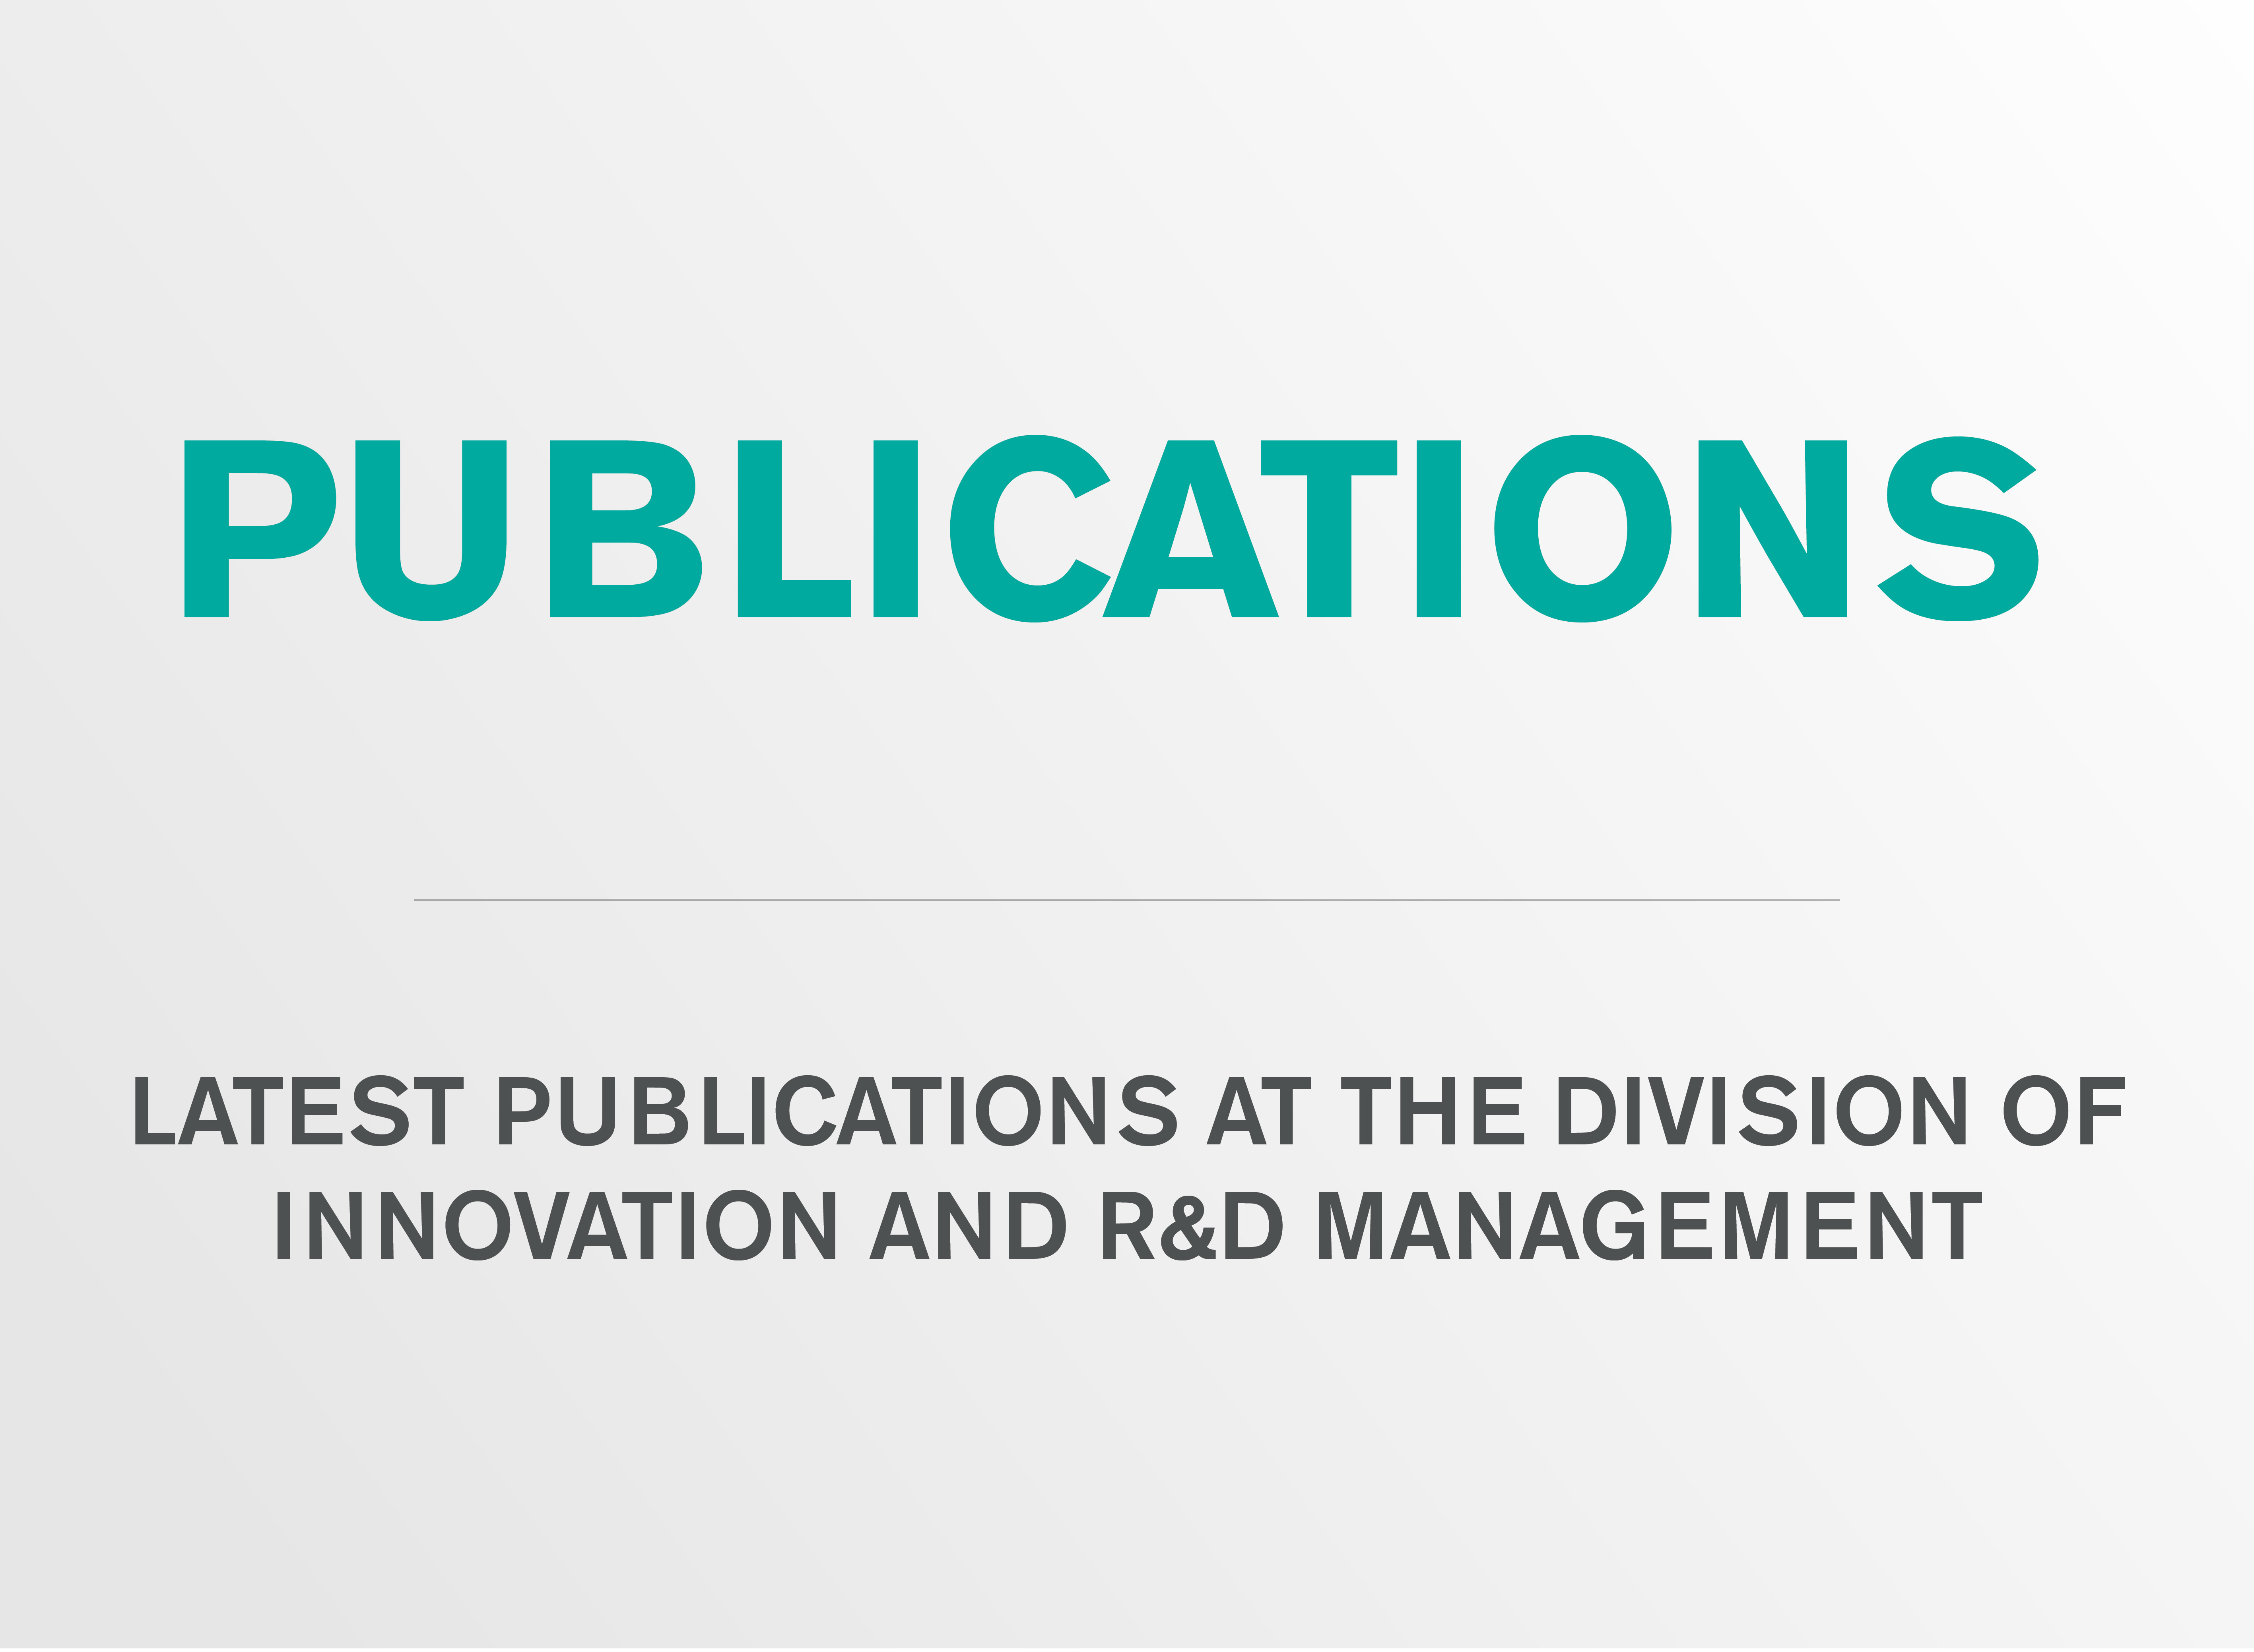 Publications at the division of Innovation and R&D Management.